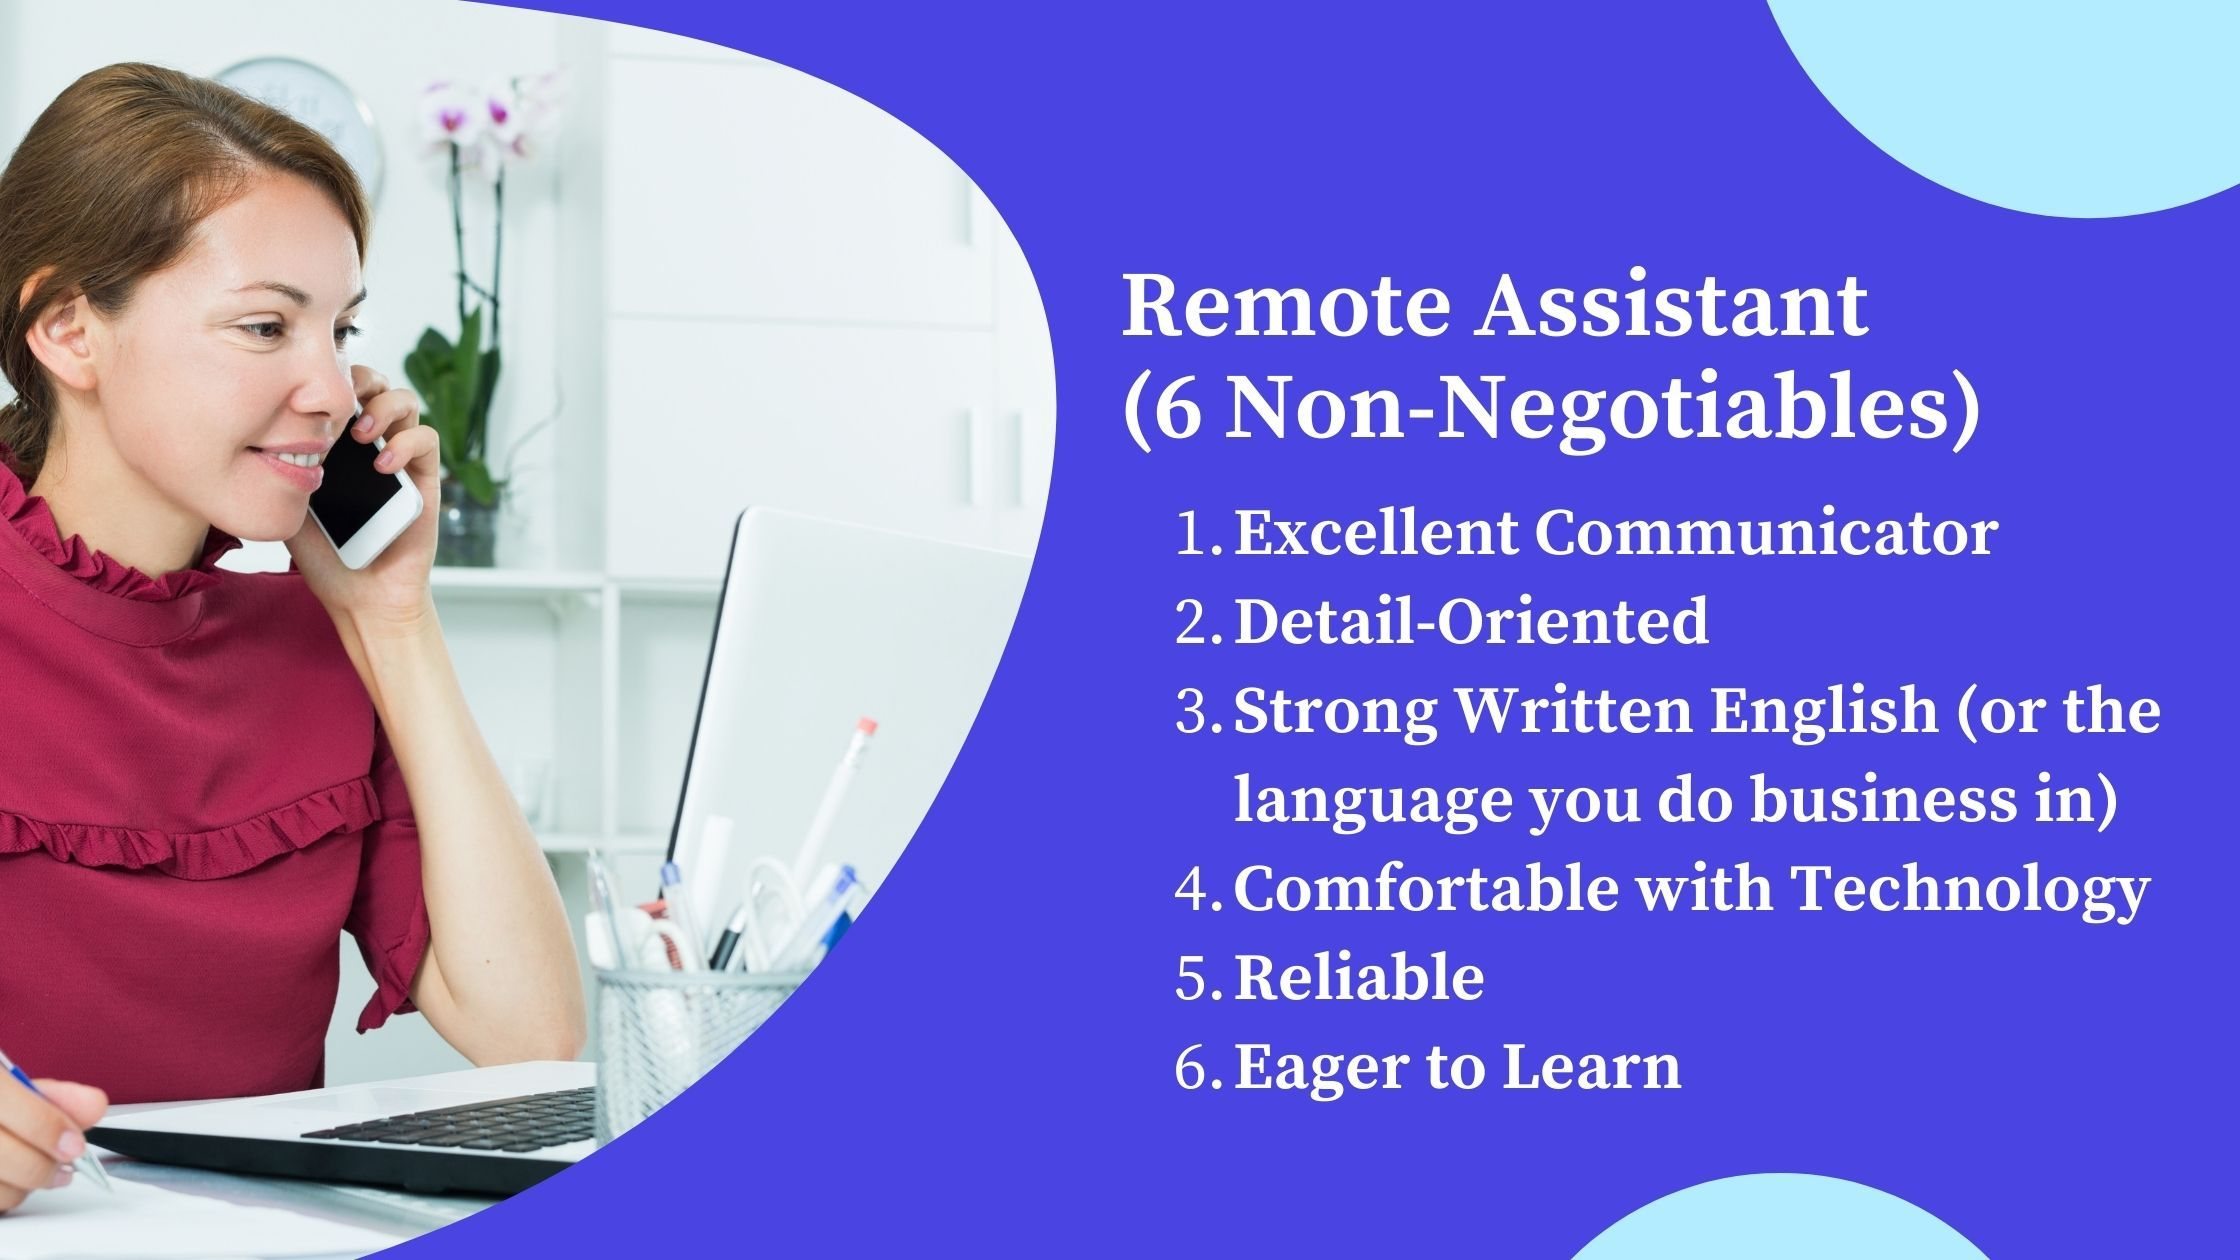 Remote Assistant